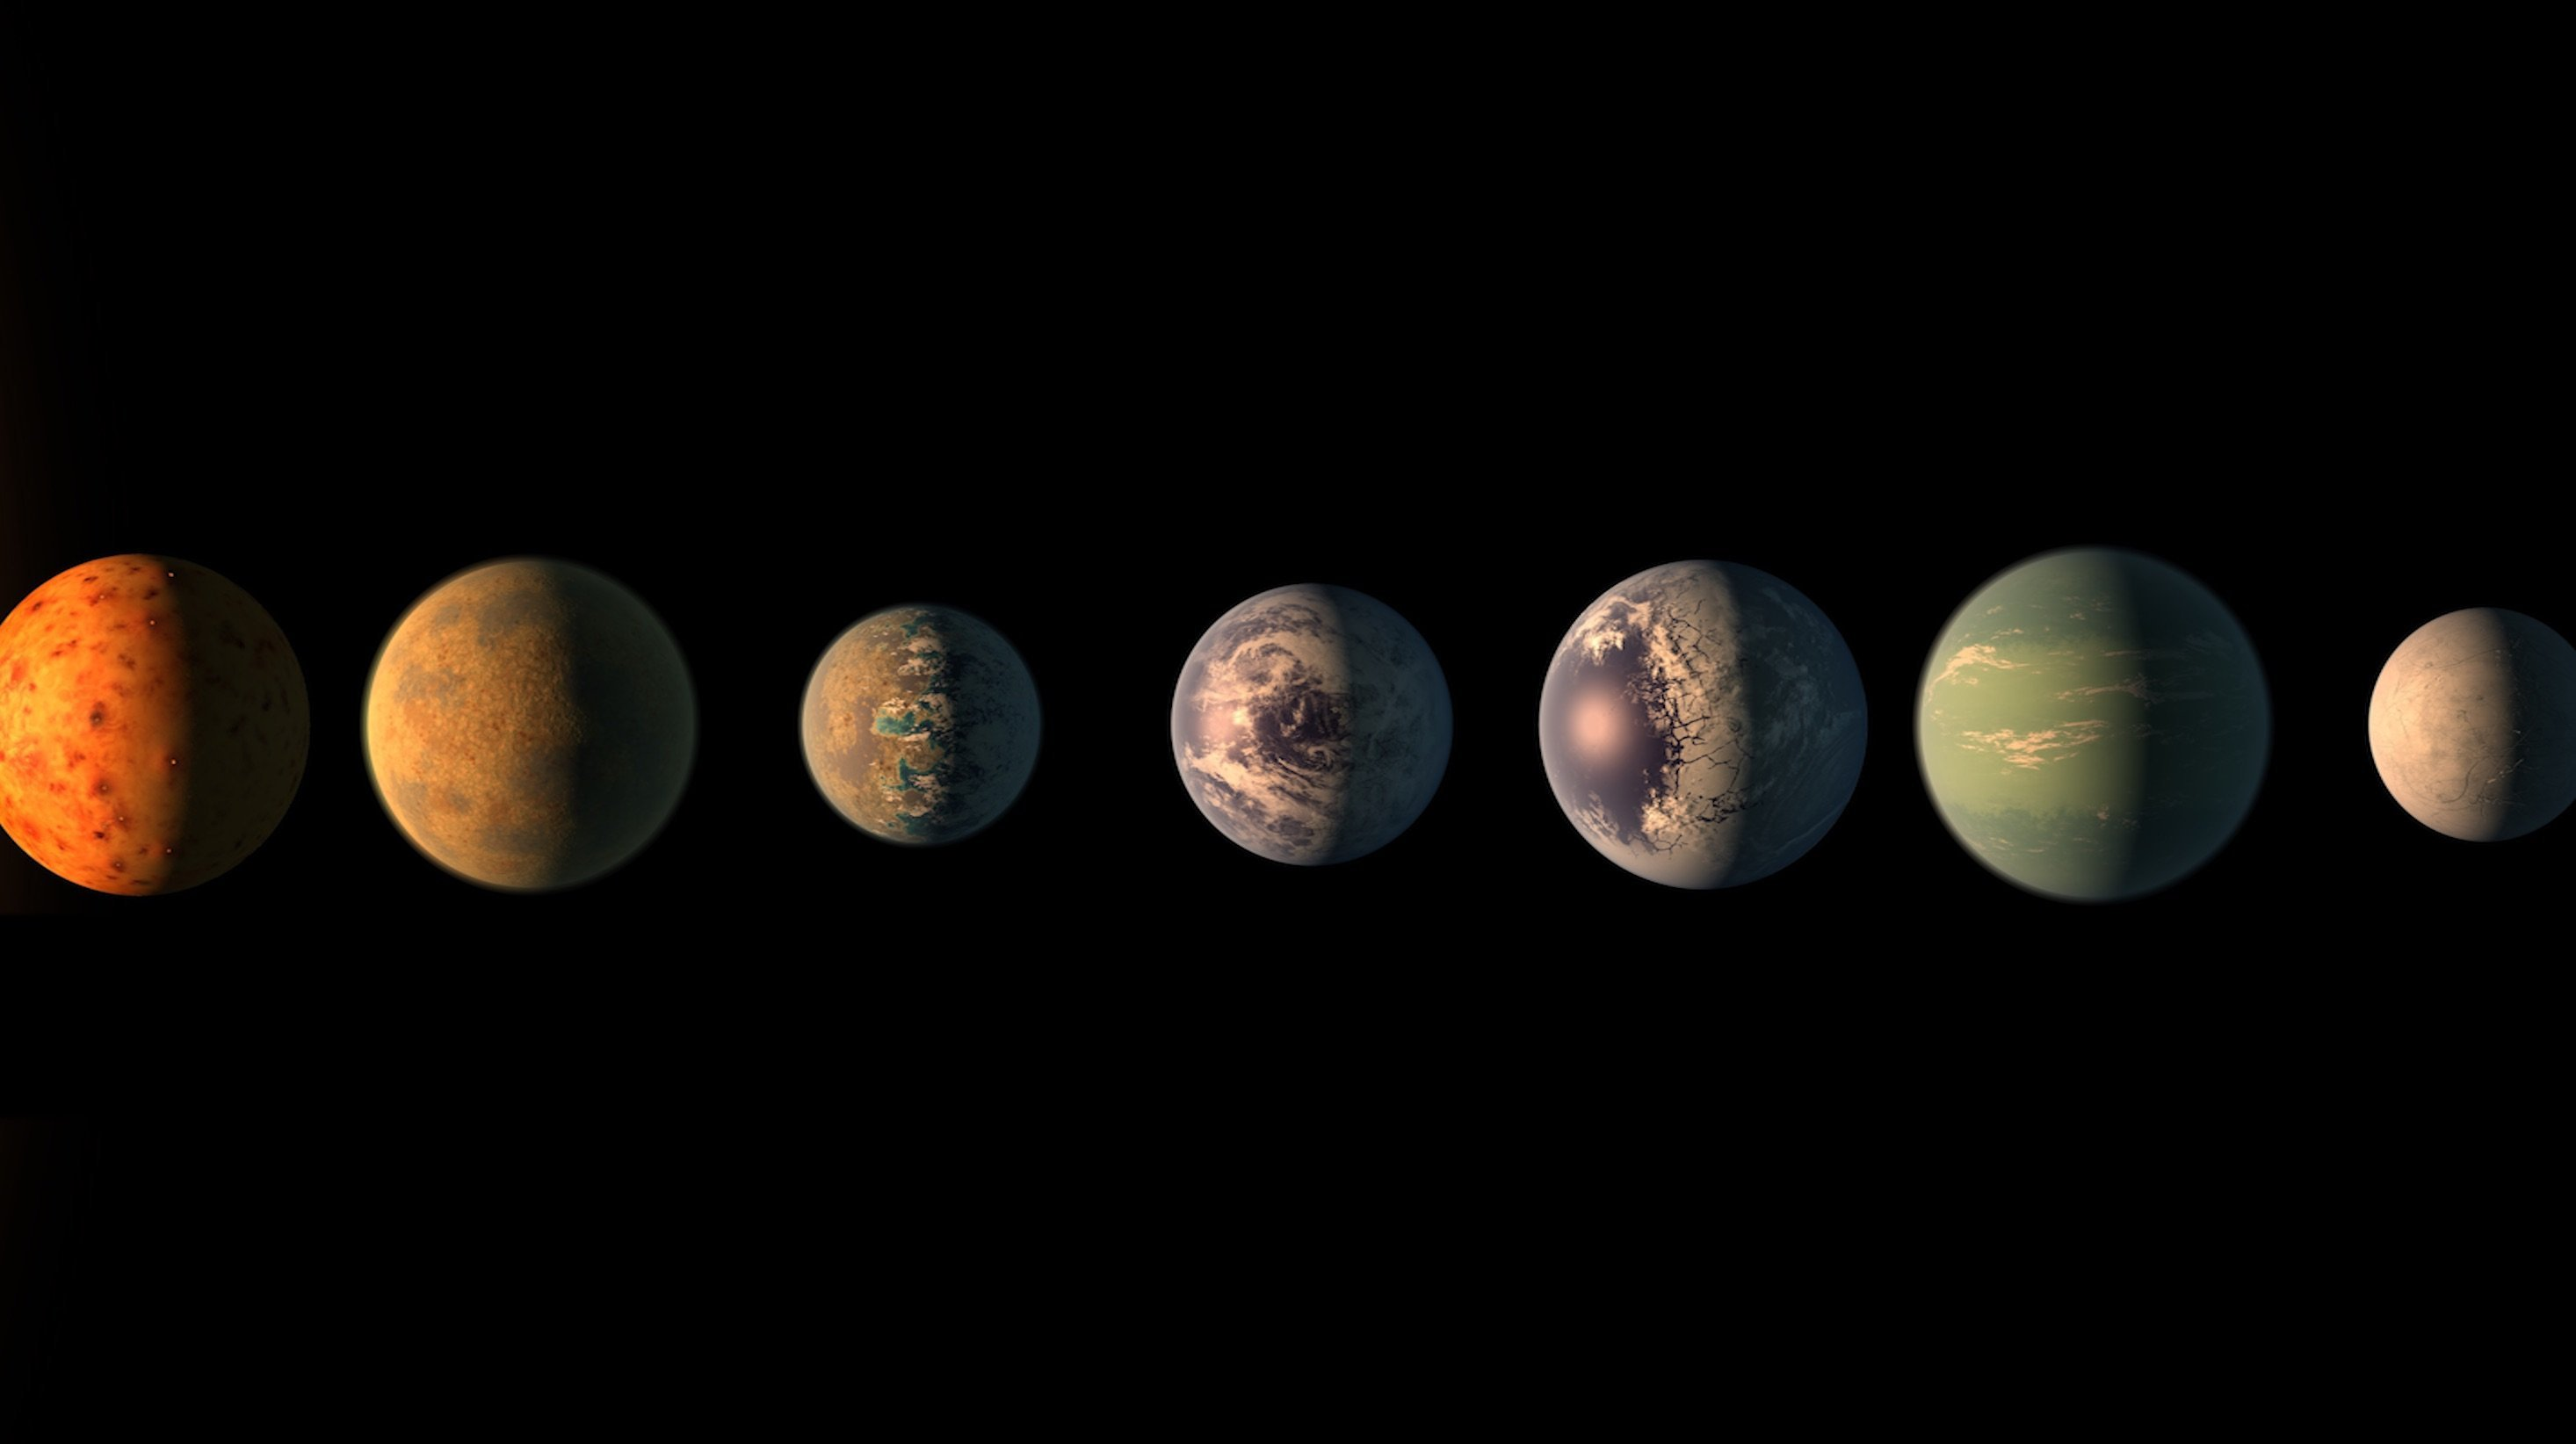 Exoplanets could have better conditions for life than Earth, study says